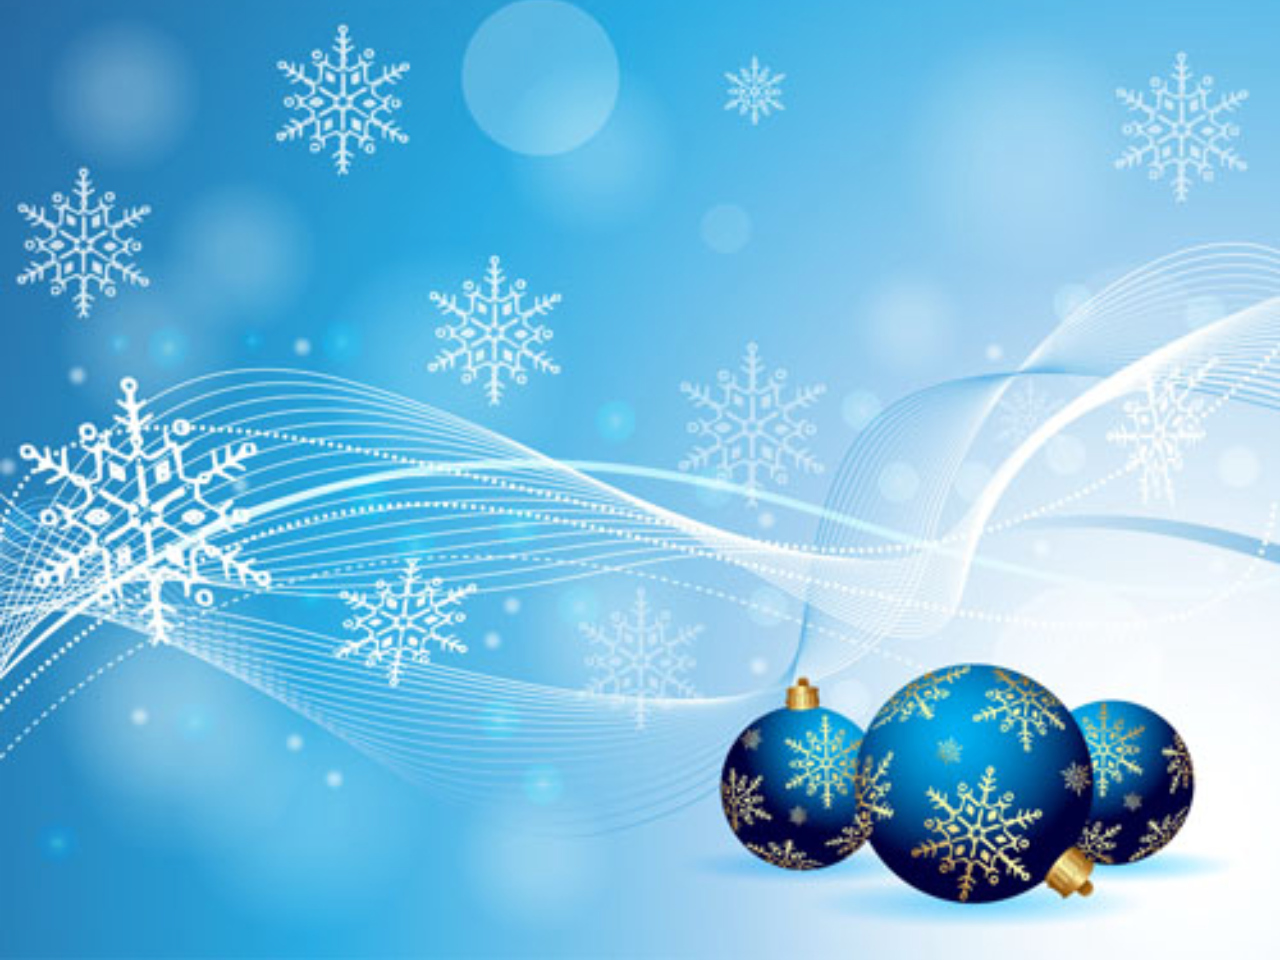 Images Of Christmas, Blue Decoration Balls  279.49 Kb